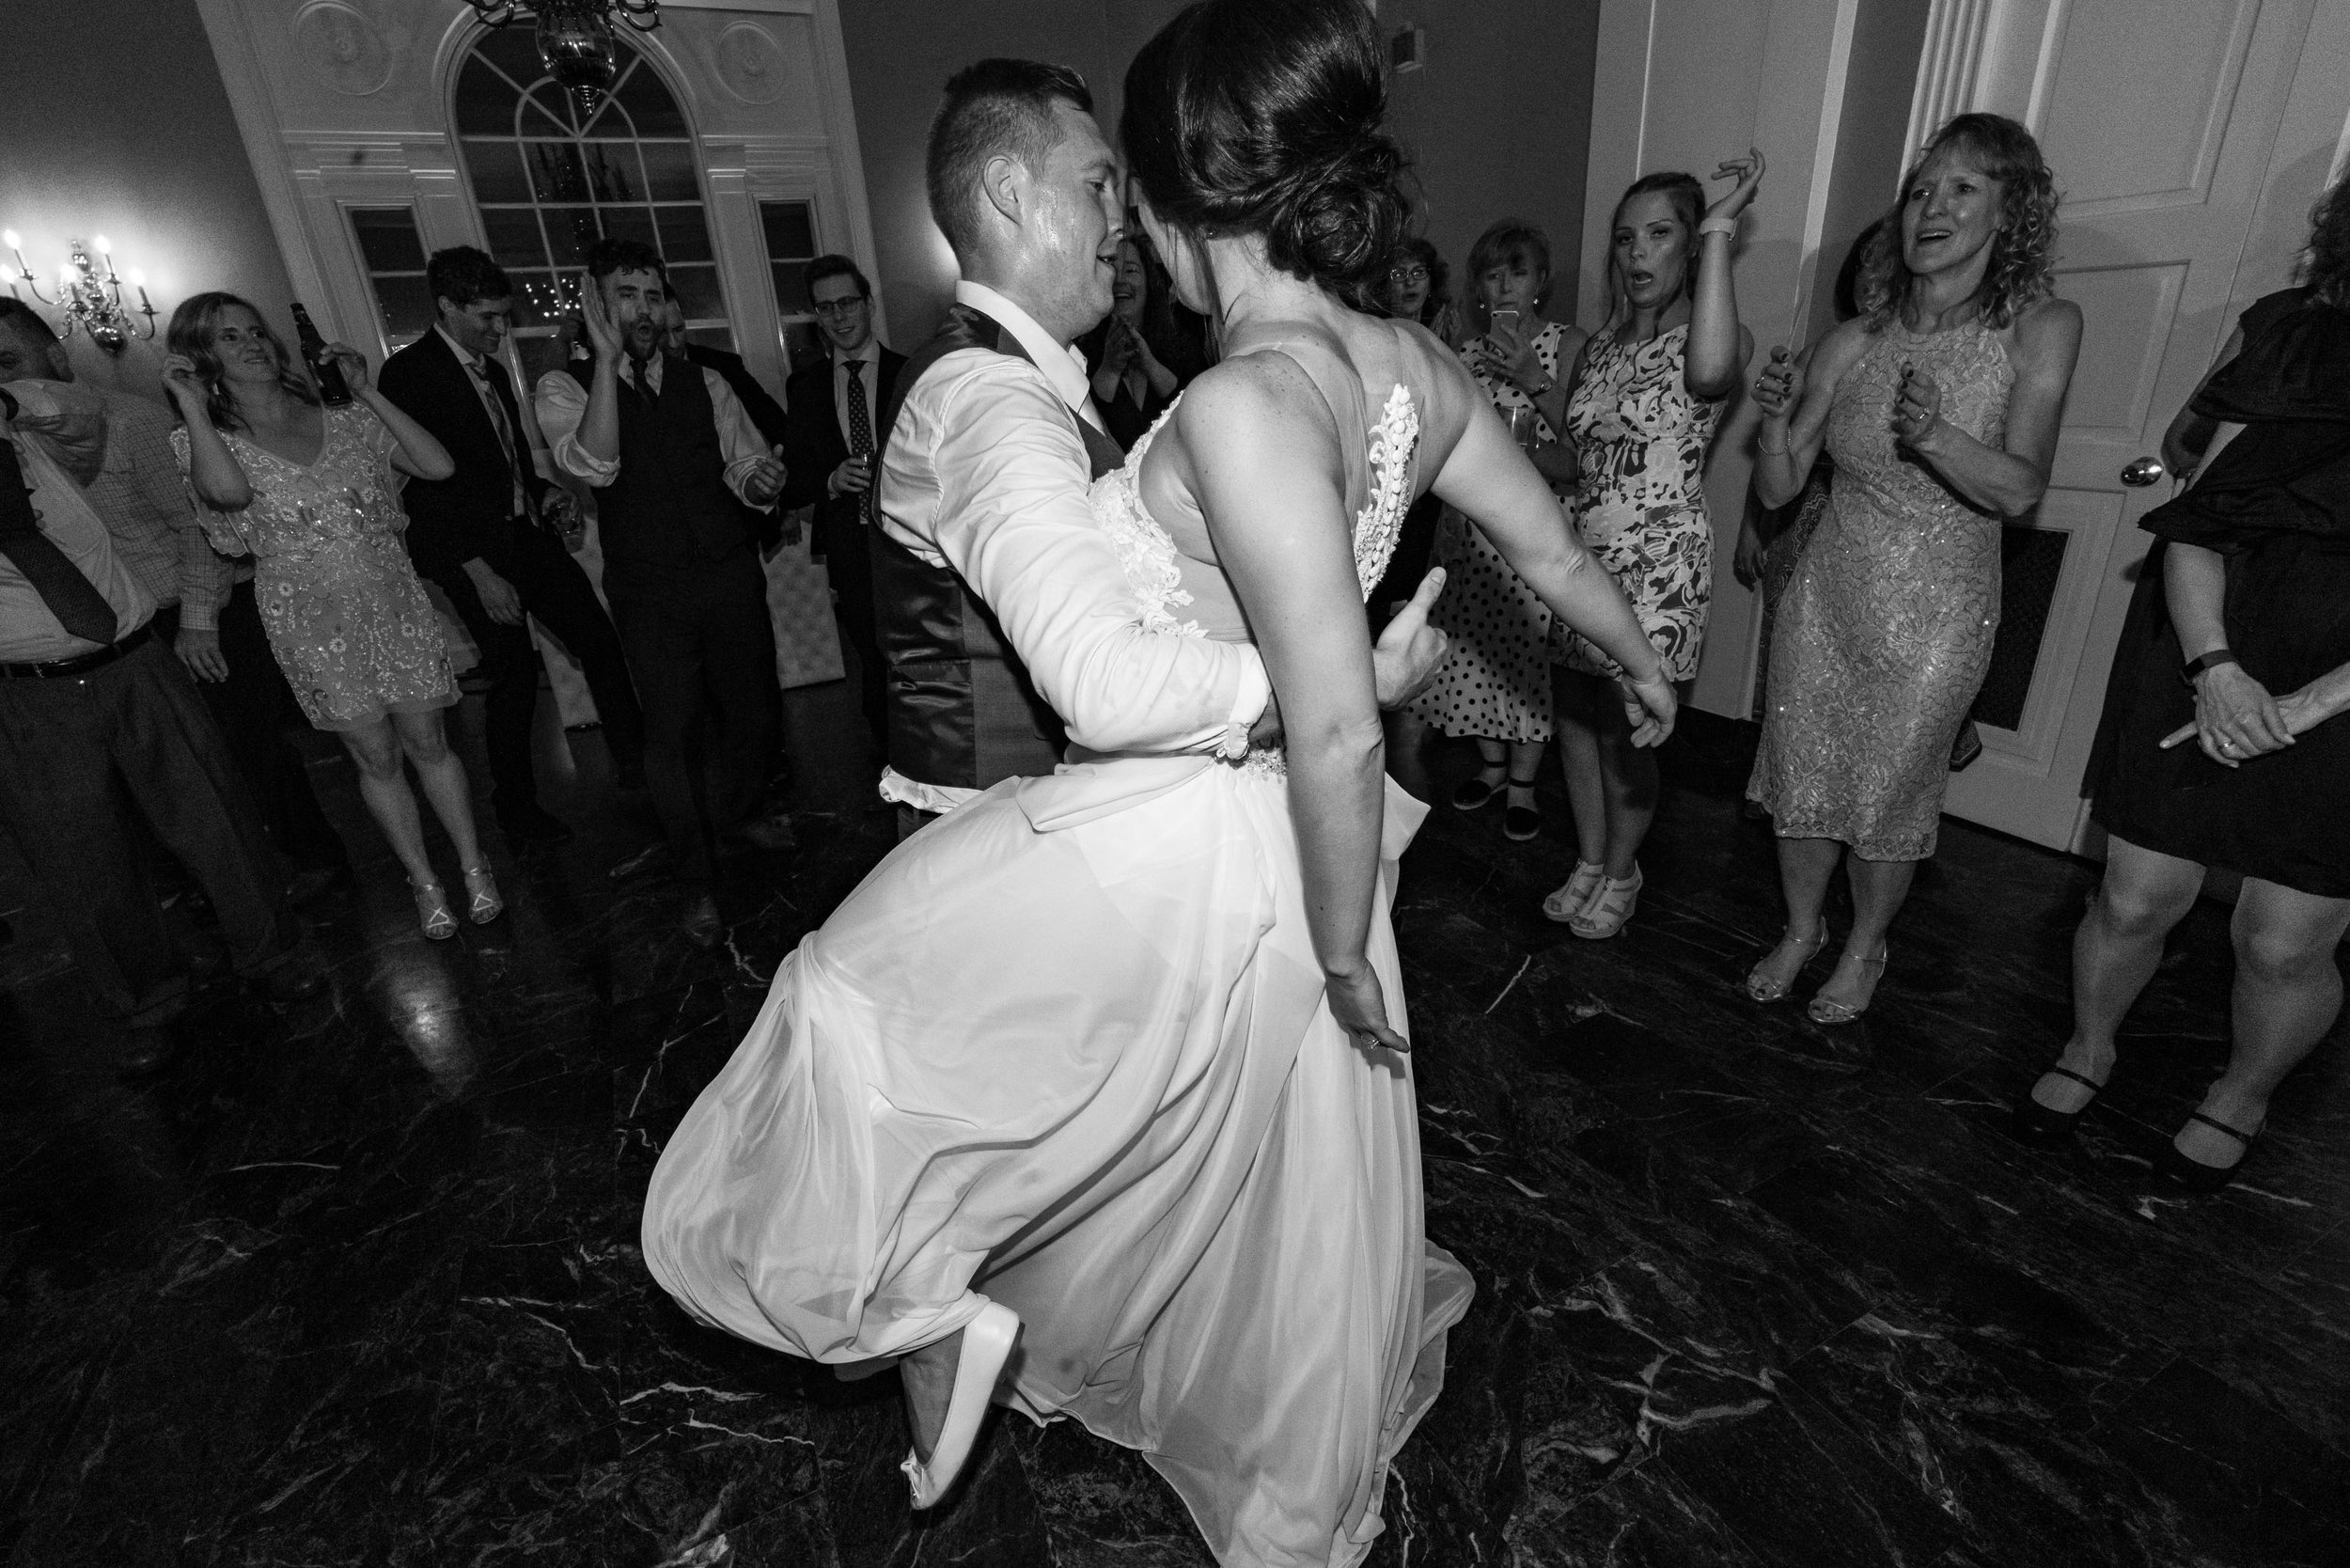 Wedding reception and dance floor at Rockville wedding venue Glenview Mansion